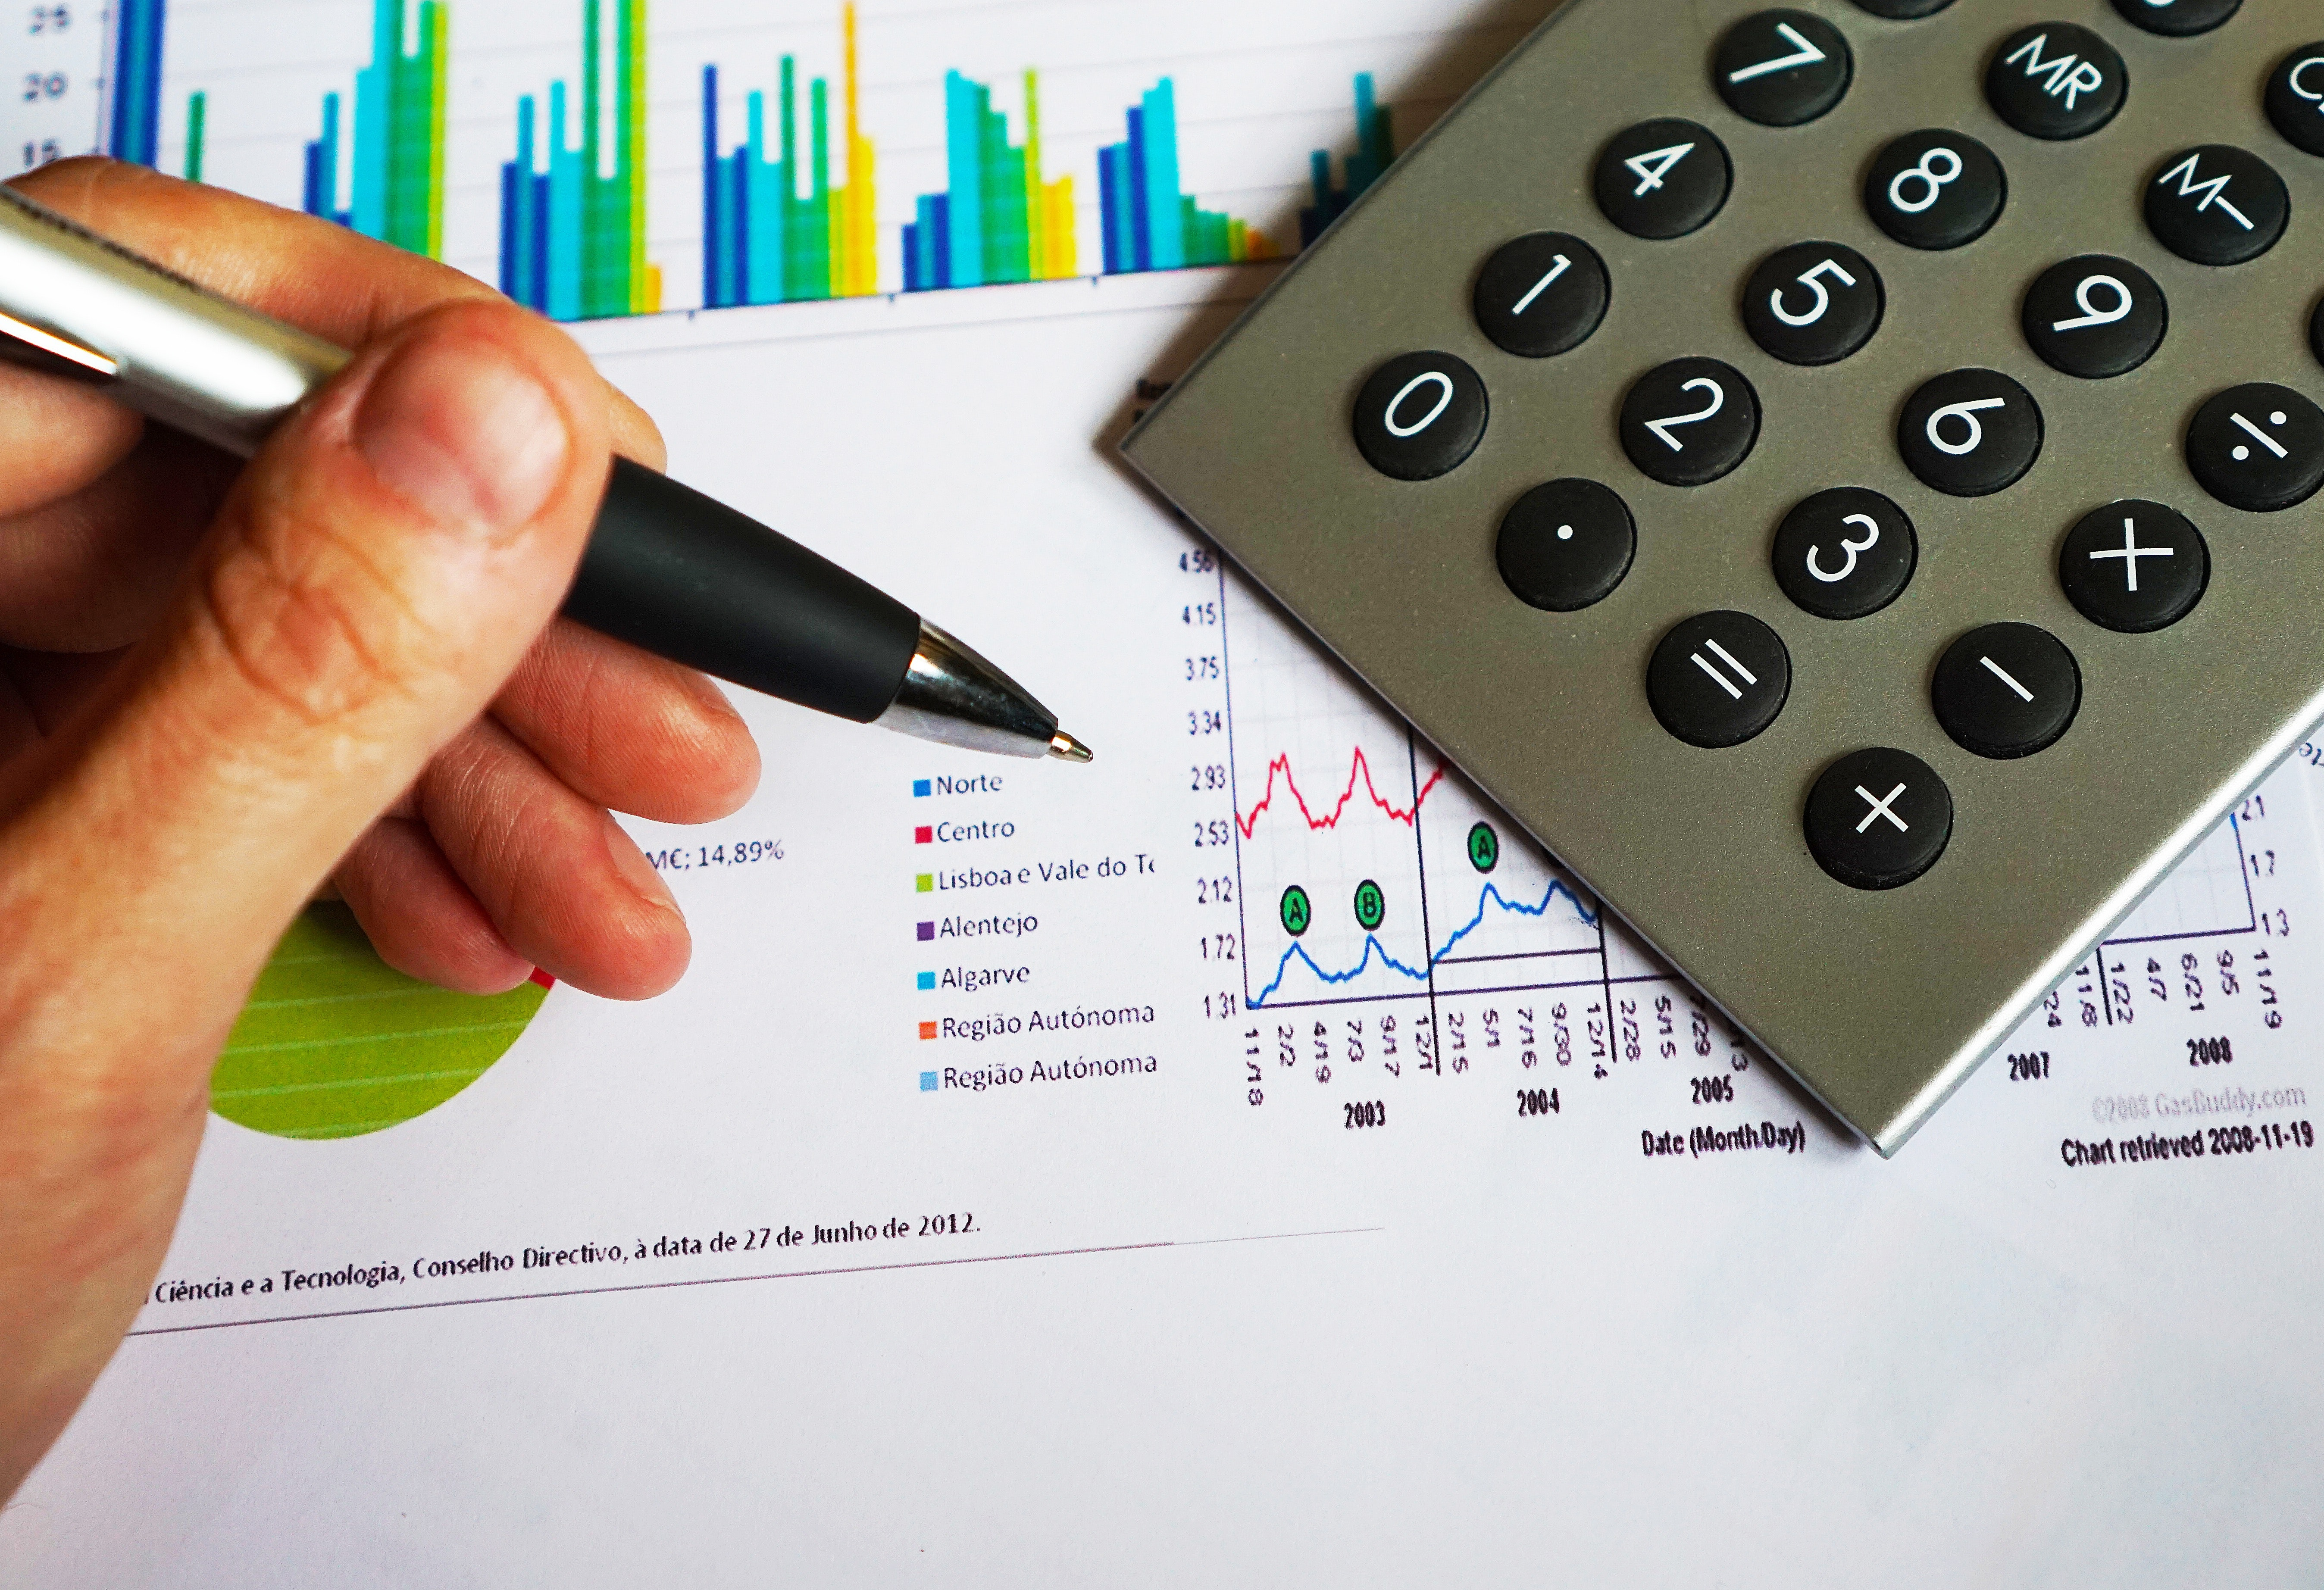 Calculating how to sell in the stock market